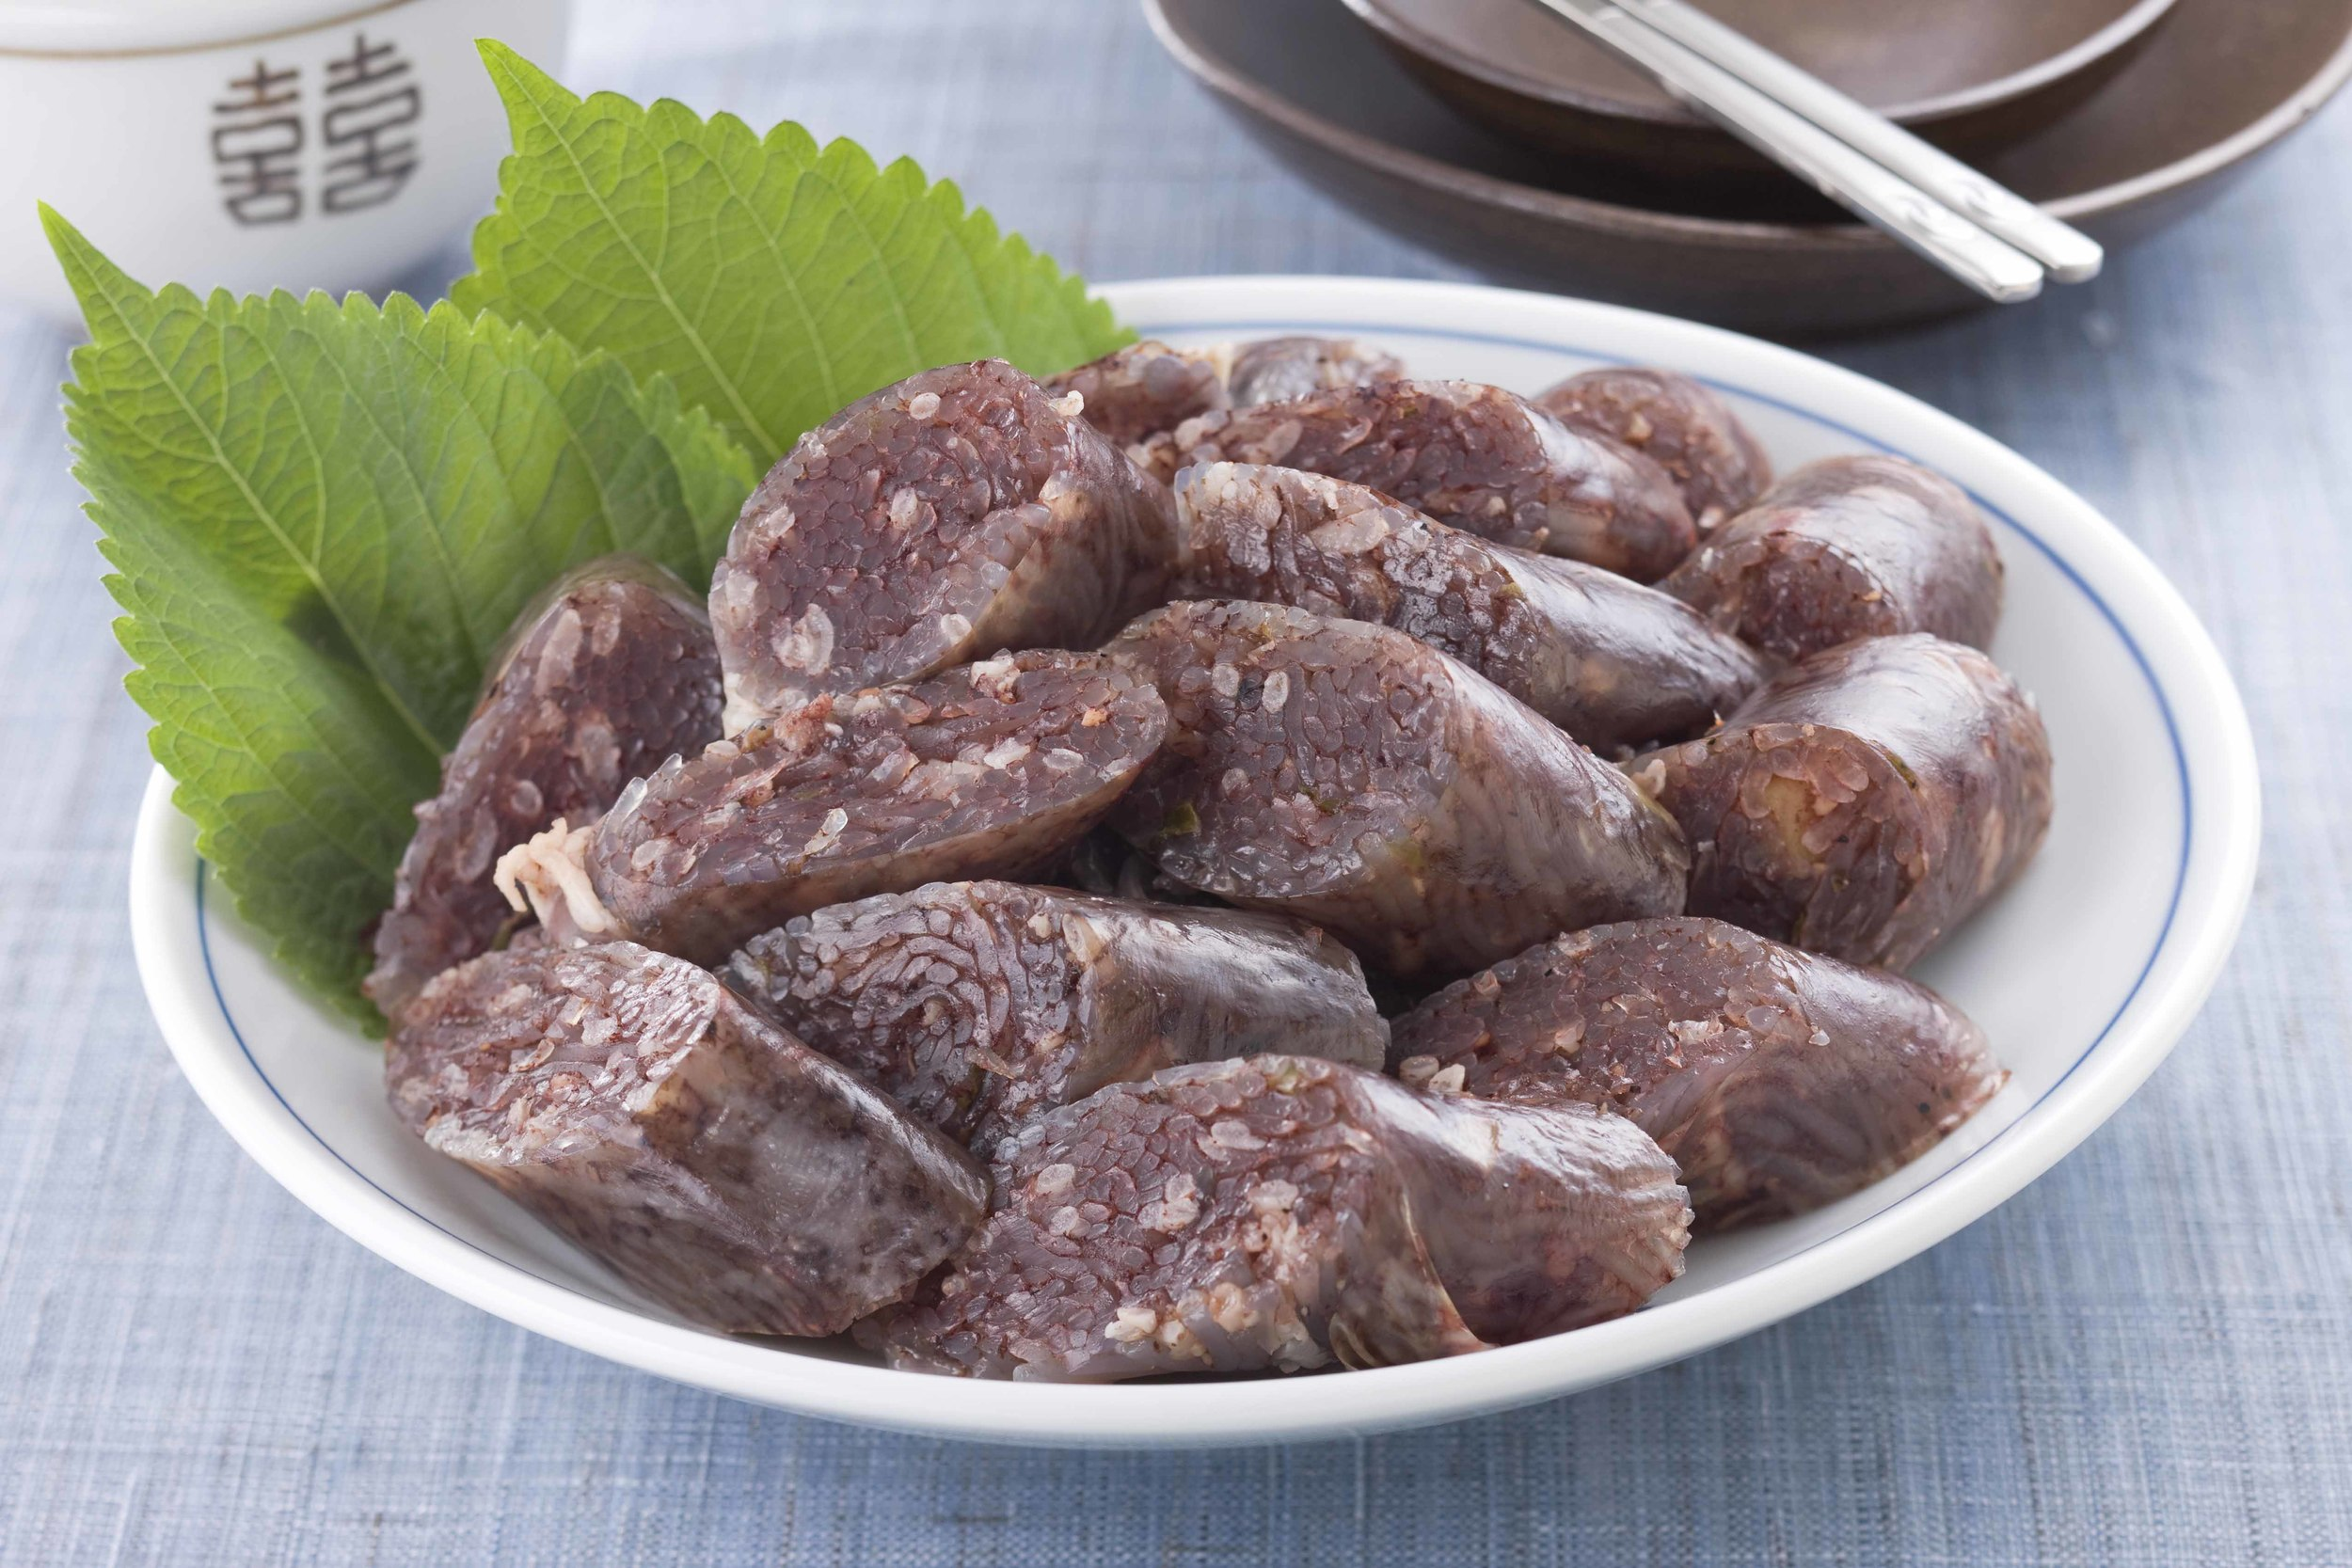 2. Blood Sausage - 순대 (soondae)